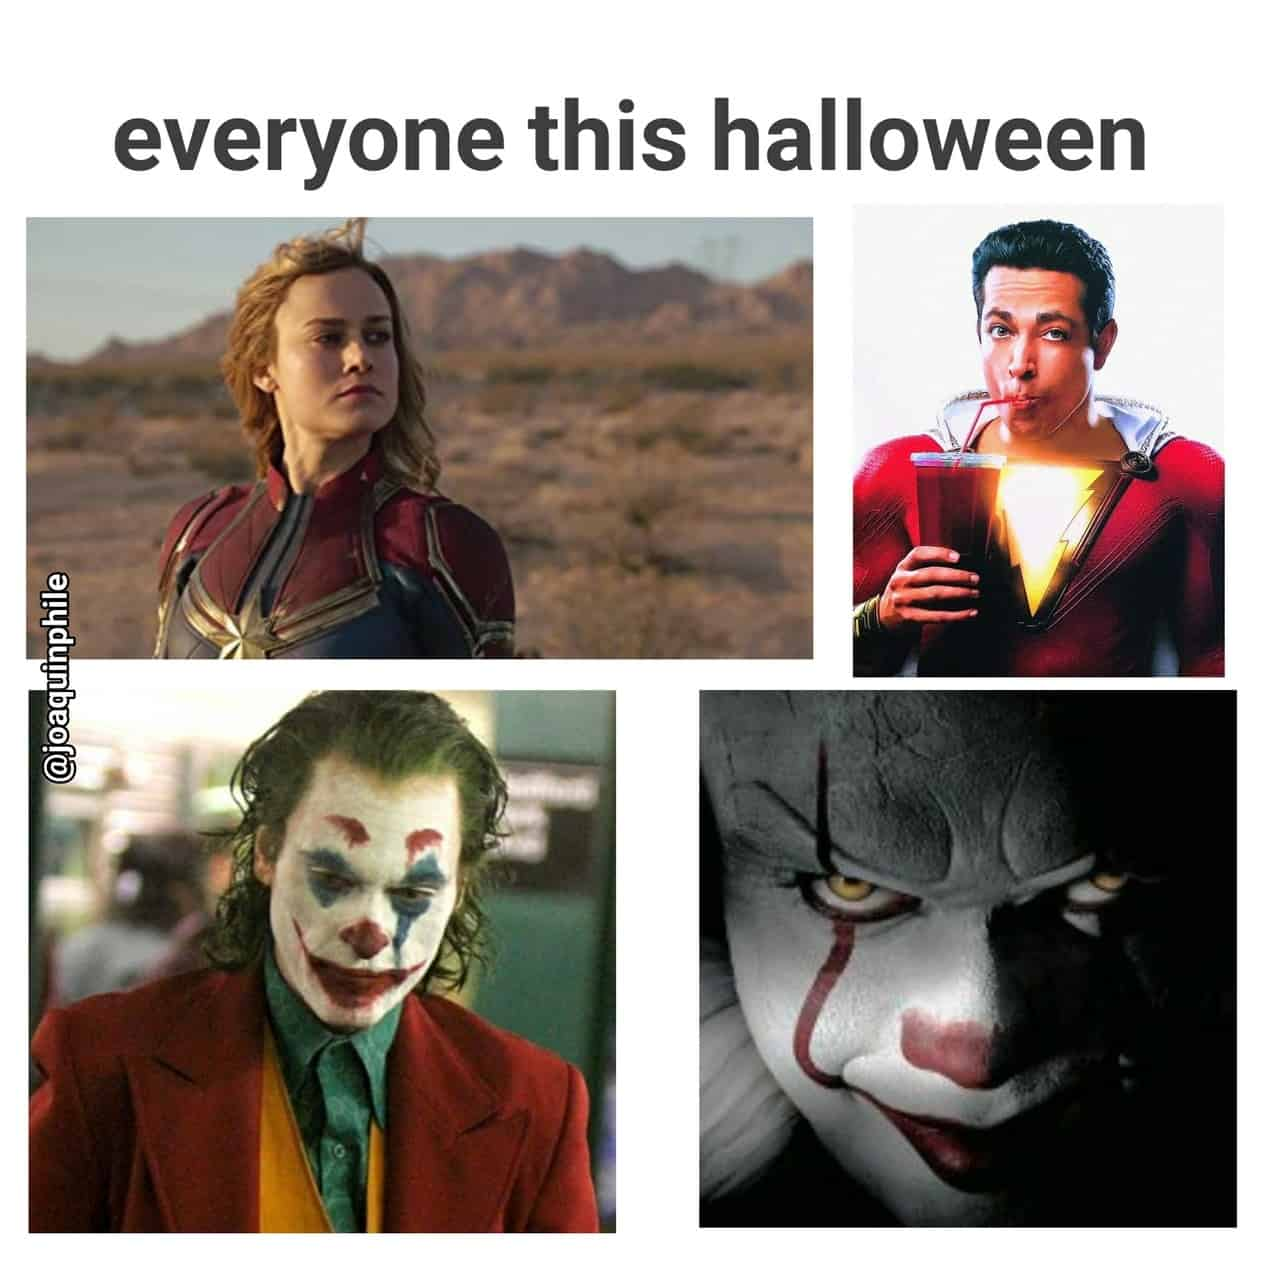 Halloween Memes 2019: The Ultimate List of Best Halloween ...